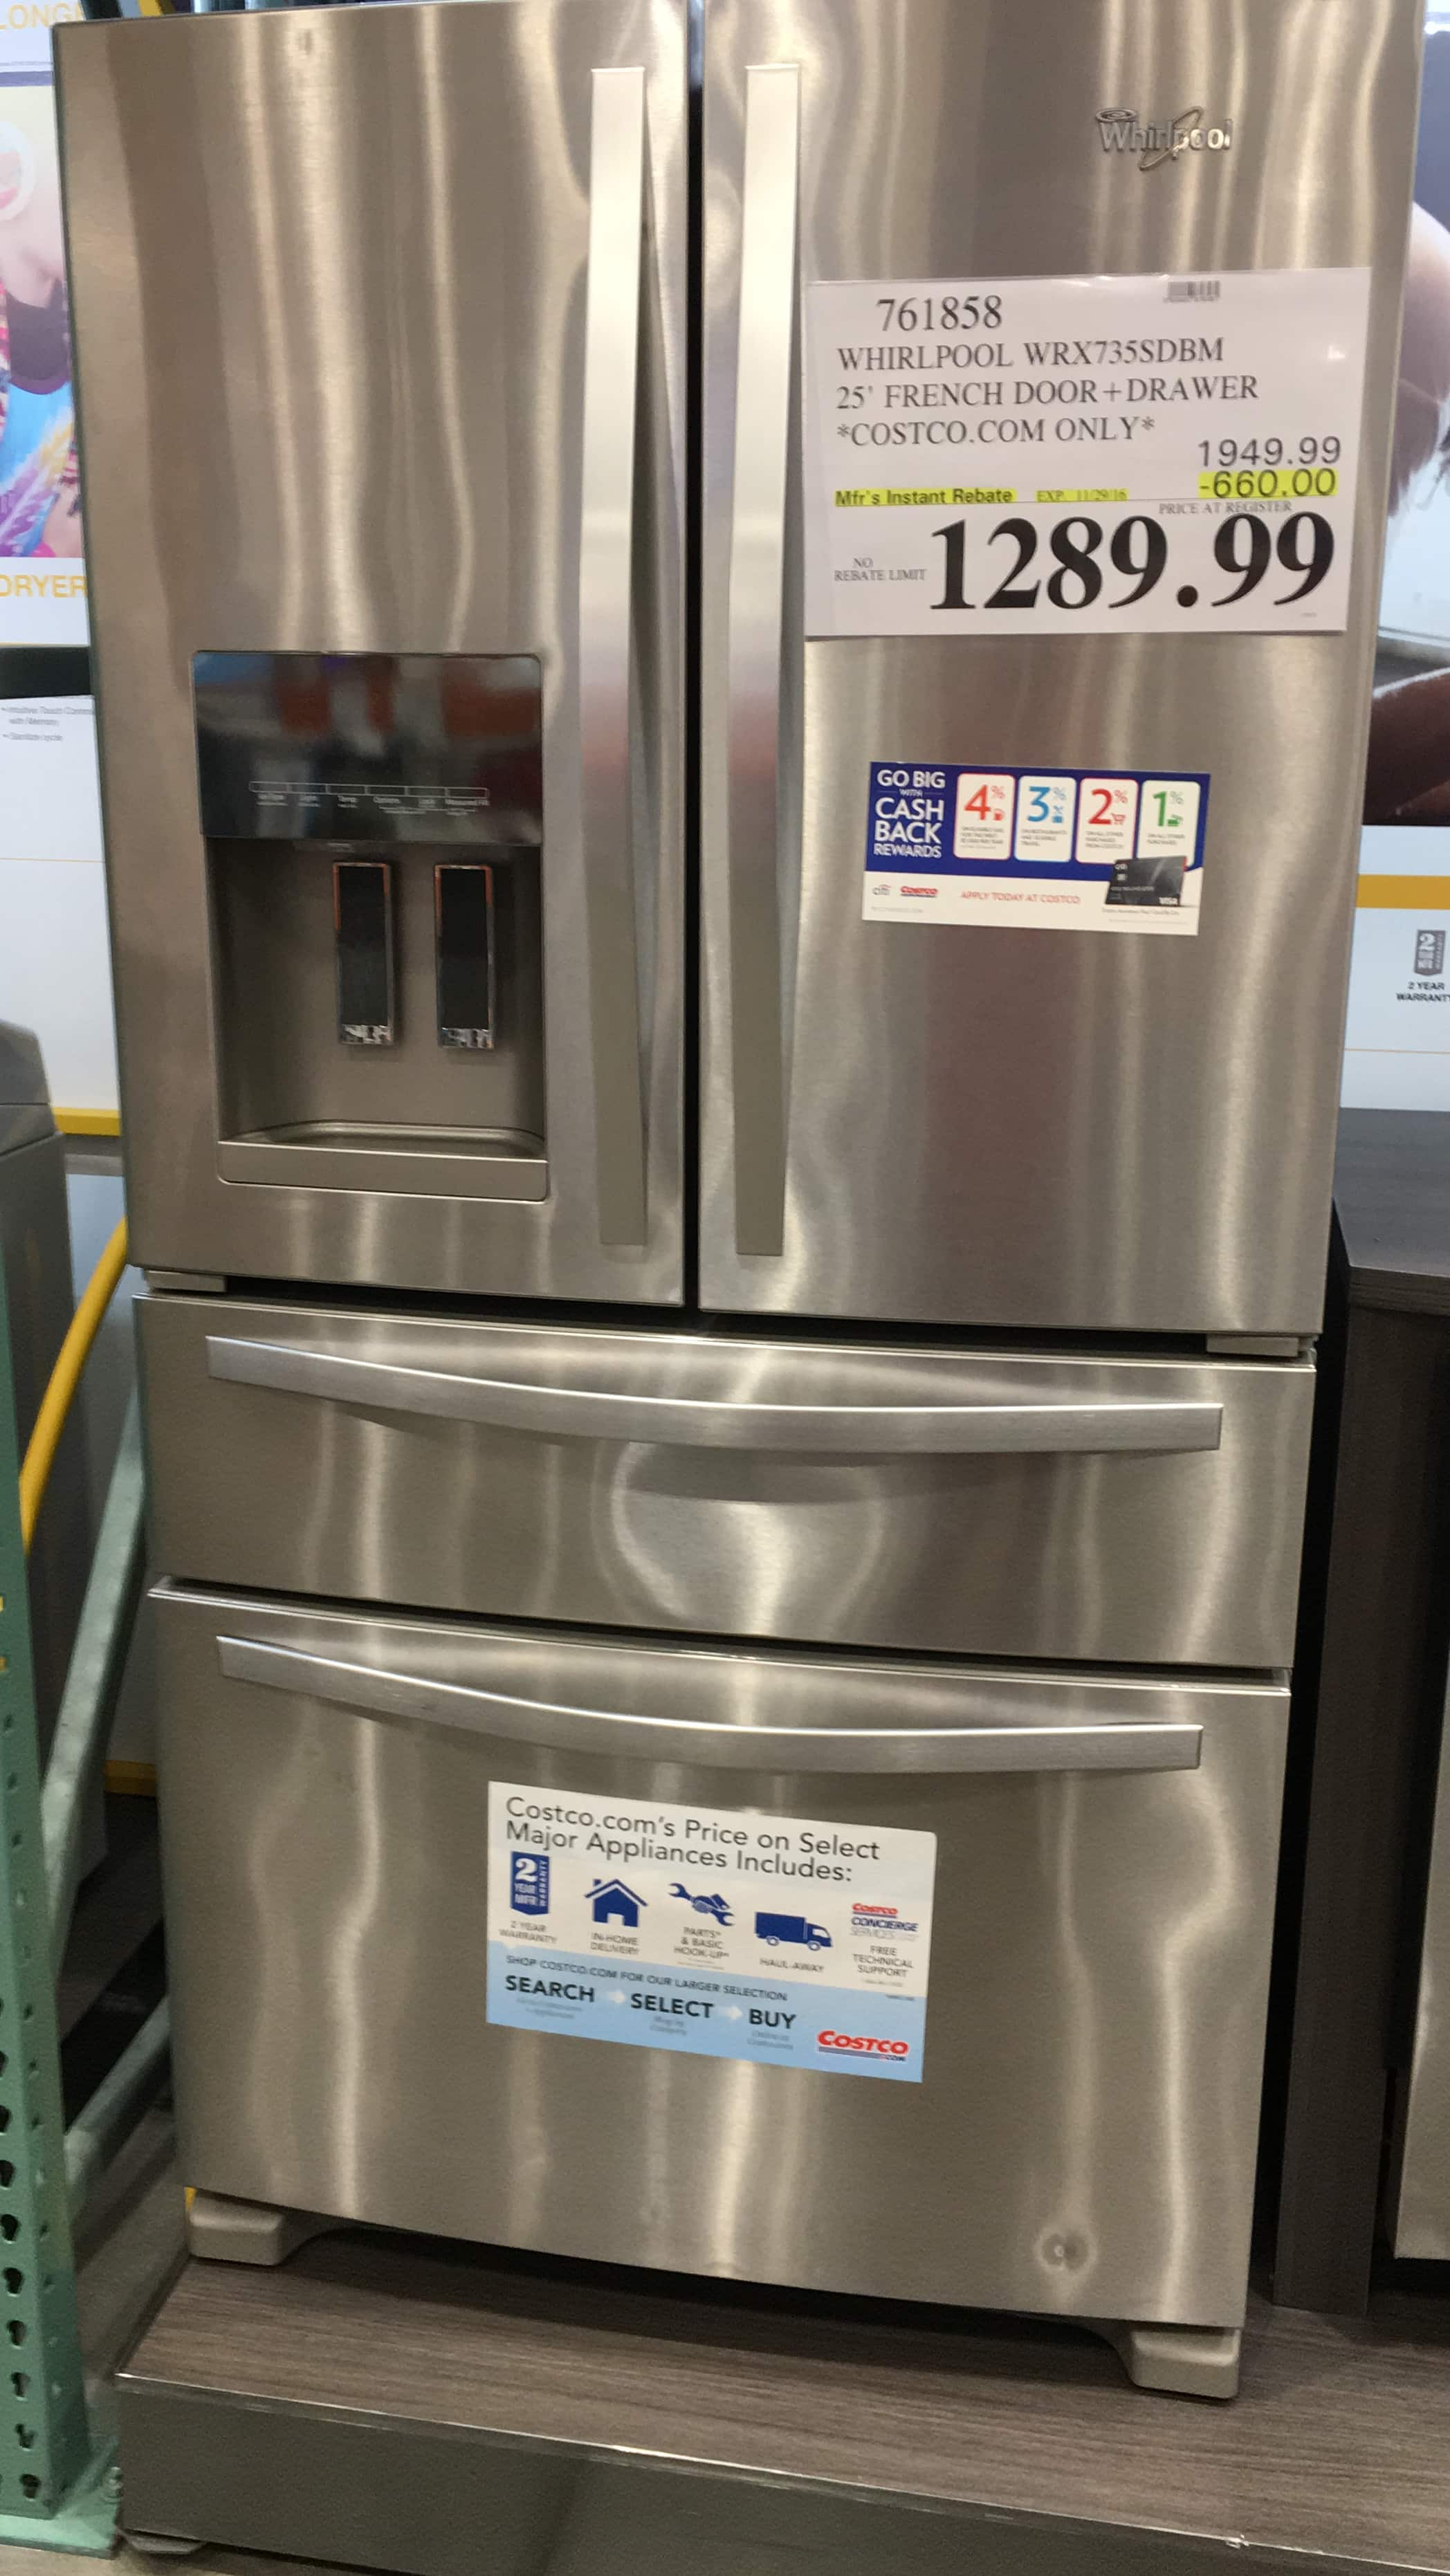 2096 #426C89 Costco Has A Whirlpool 25CuFt French Door Stainless Steel Refrigerator  pic Costco Doors 47613724